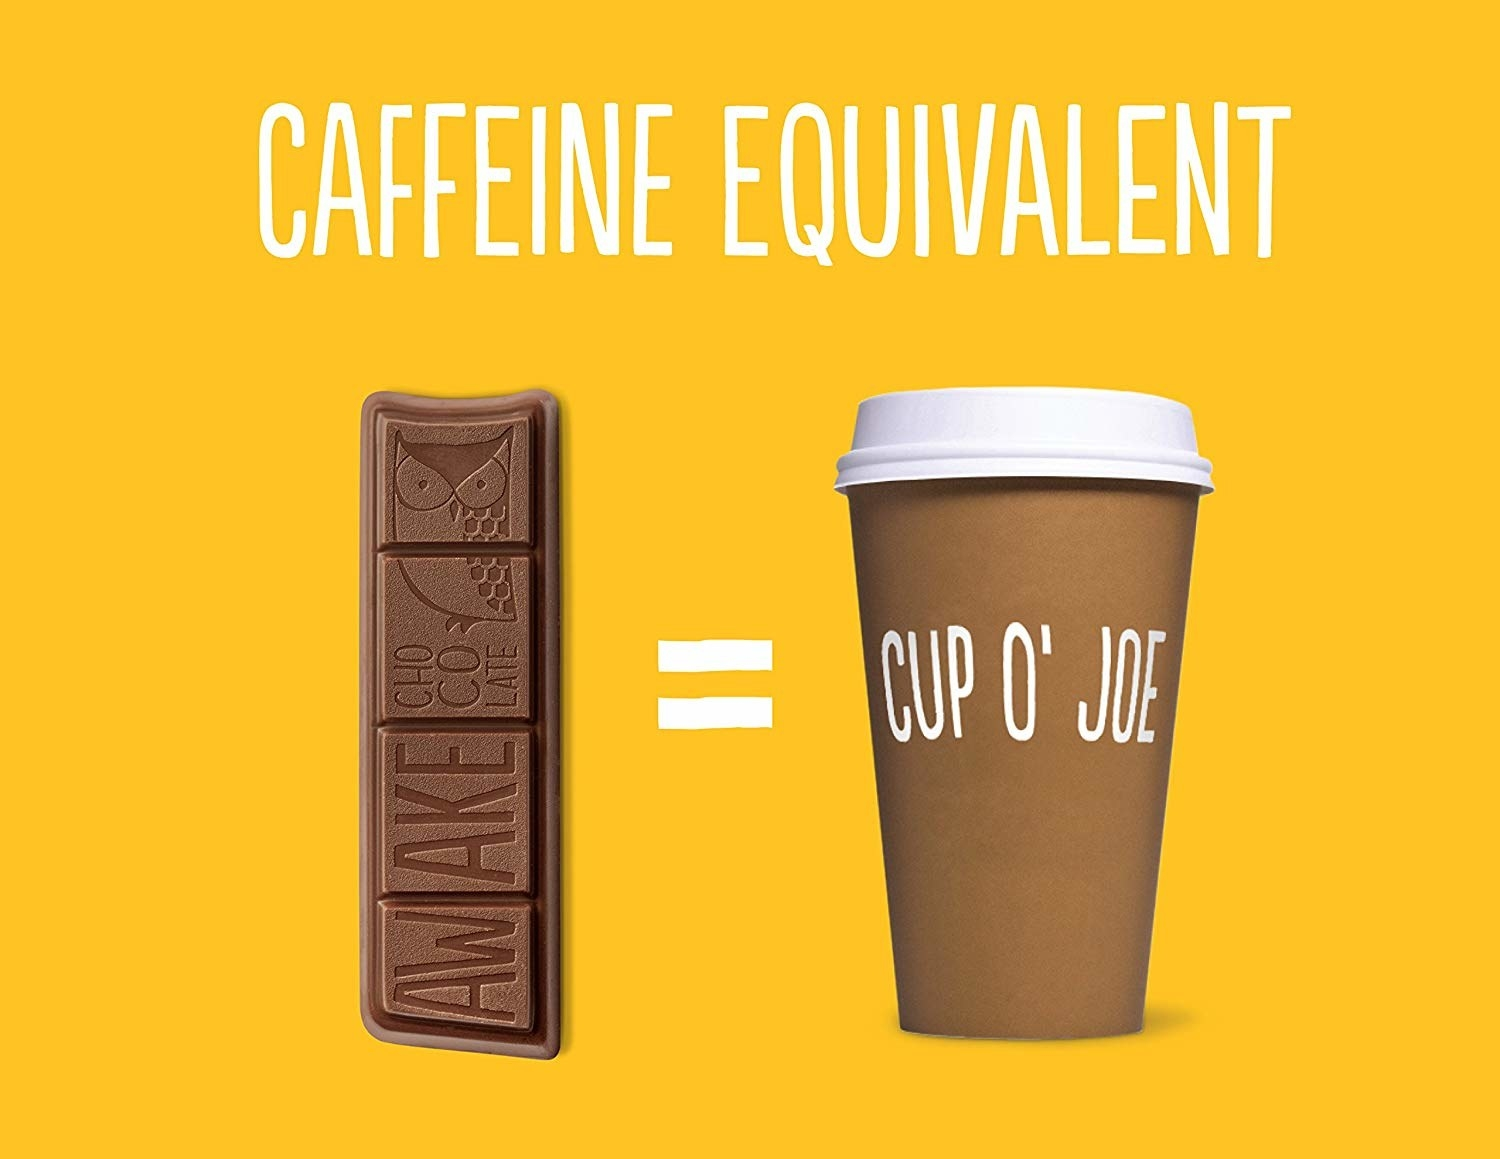 A graphic showing one bar of chocolate equating to one cup of coffee